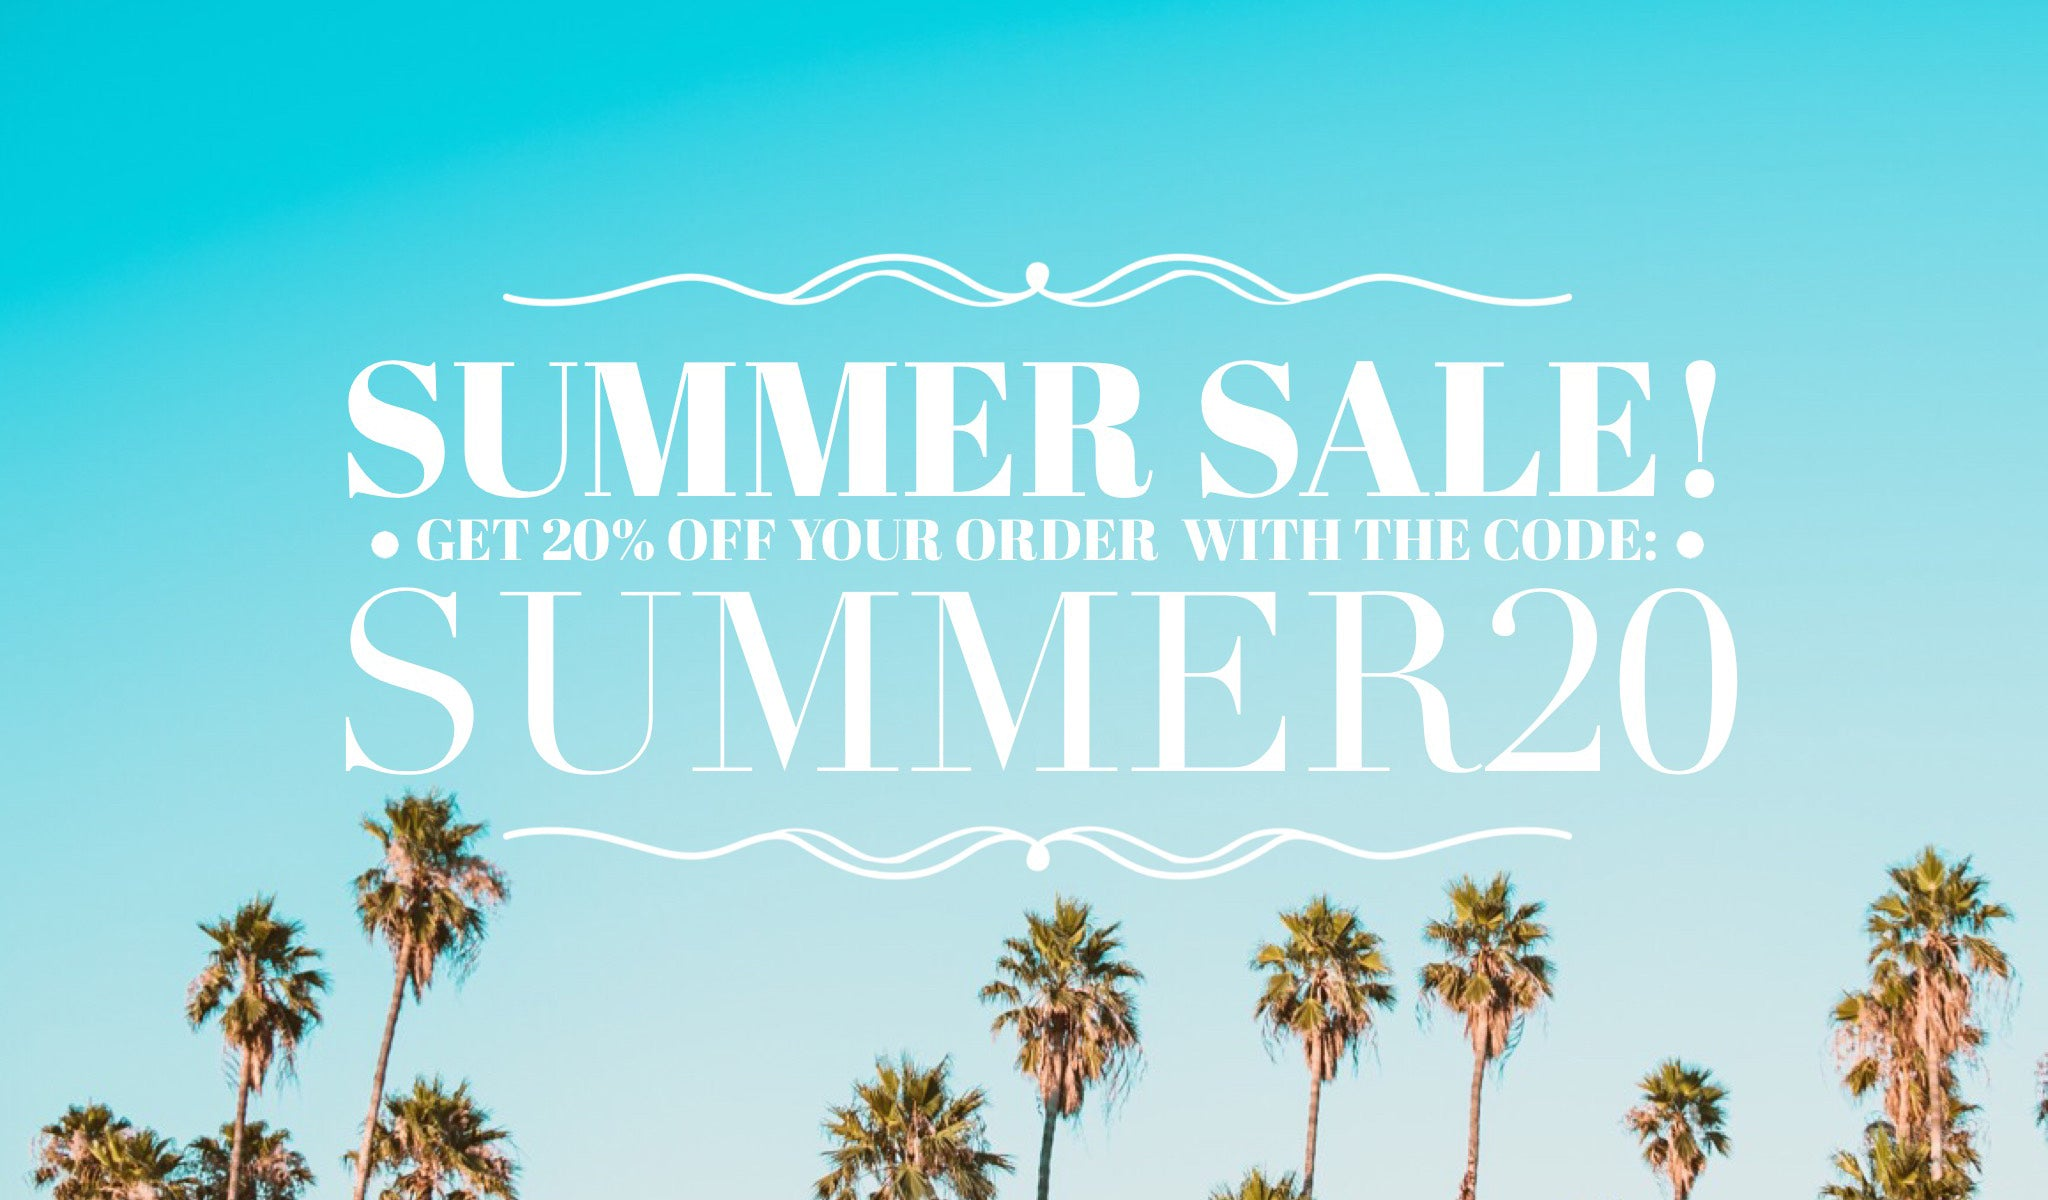 We Are Having a Summer Sale!